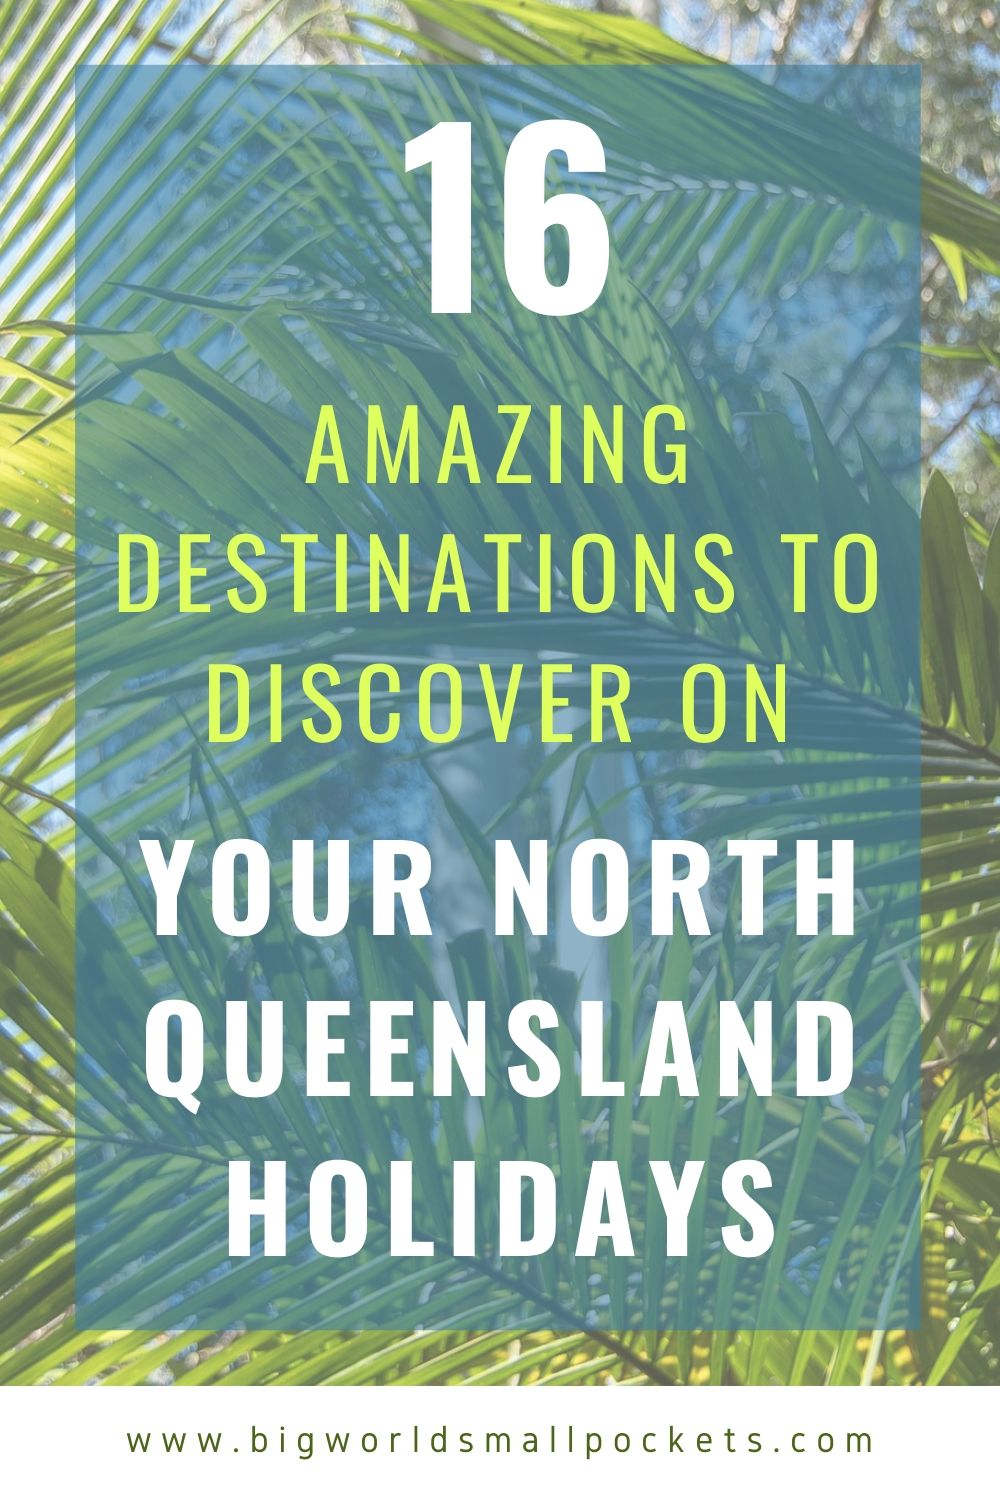 16 Epic Destinations to Discover on Your North Queensland Holidays